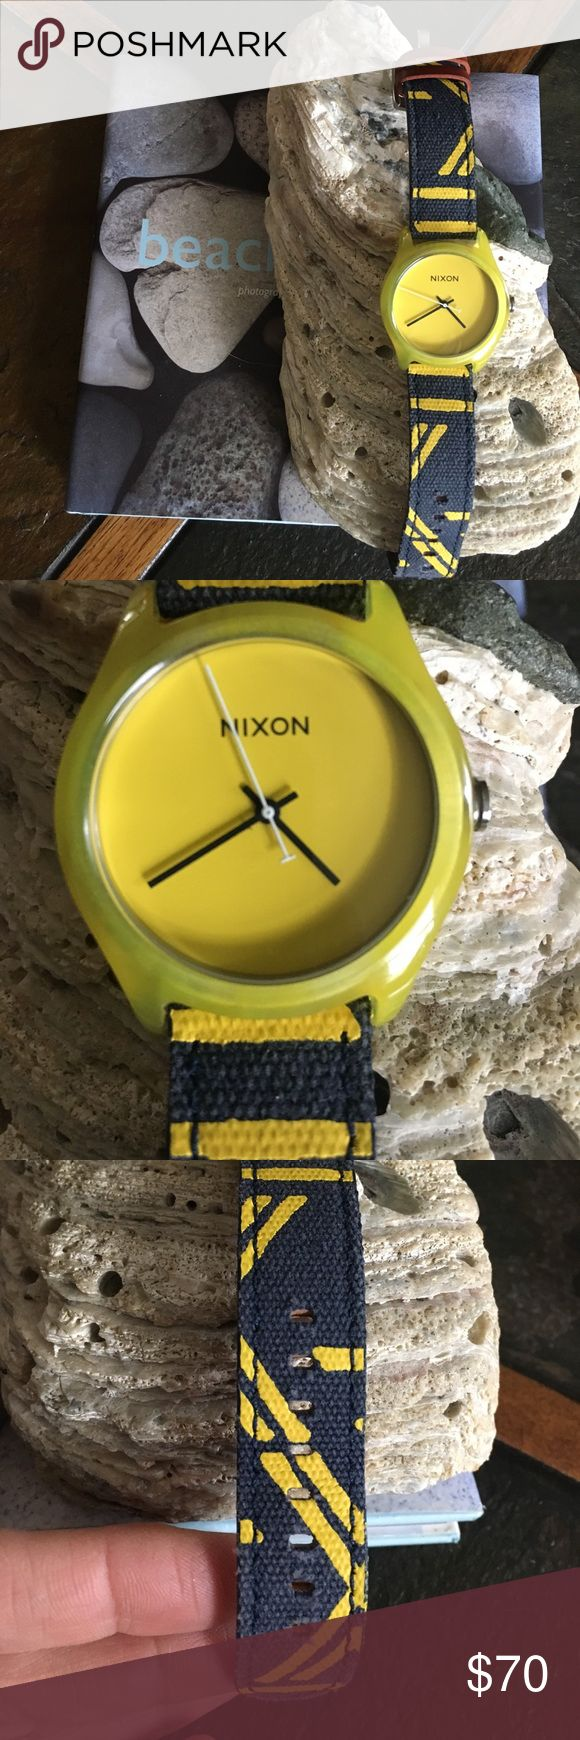 "Nixon women's surf watch Nixon women's watch with blue and yellow leather and canvas strap in excellent condition. No flaws. BWaterproof. Worn twice on vacation. Bought in Costa Rica. Don't have the box anymore. I do have other Nixon boxes if you really need a box. Battery in working order. Watch face 1.5""X1.5"". Nixon Accessories Watches"